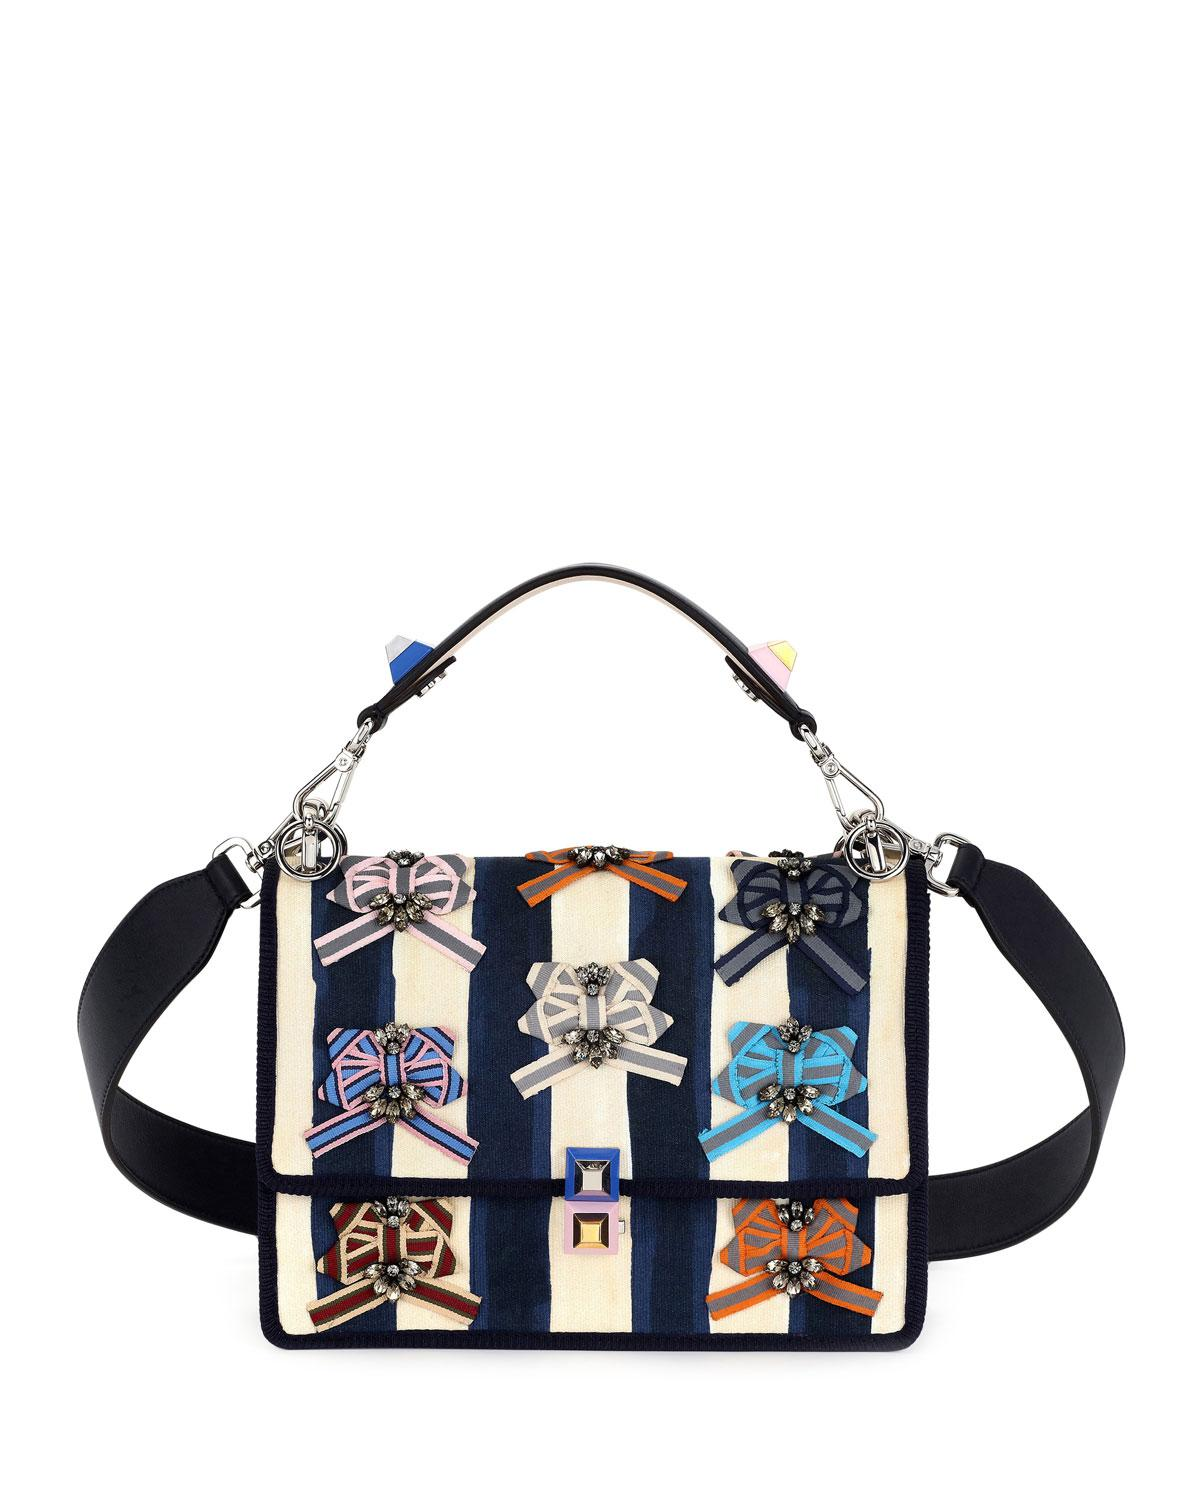 5cffa188a8be Lyst - Fendi Kan I Pequin Watercolor Shoulder Bag in Blue